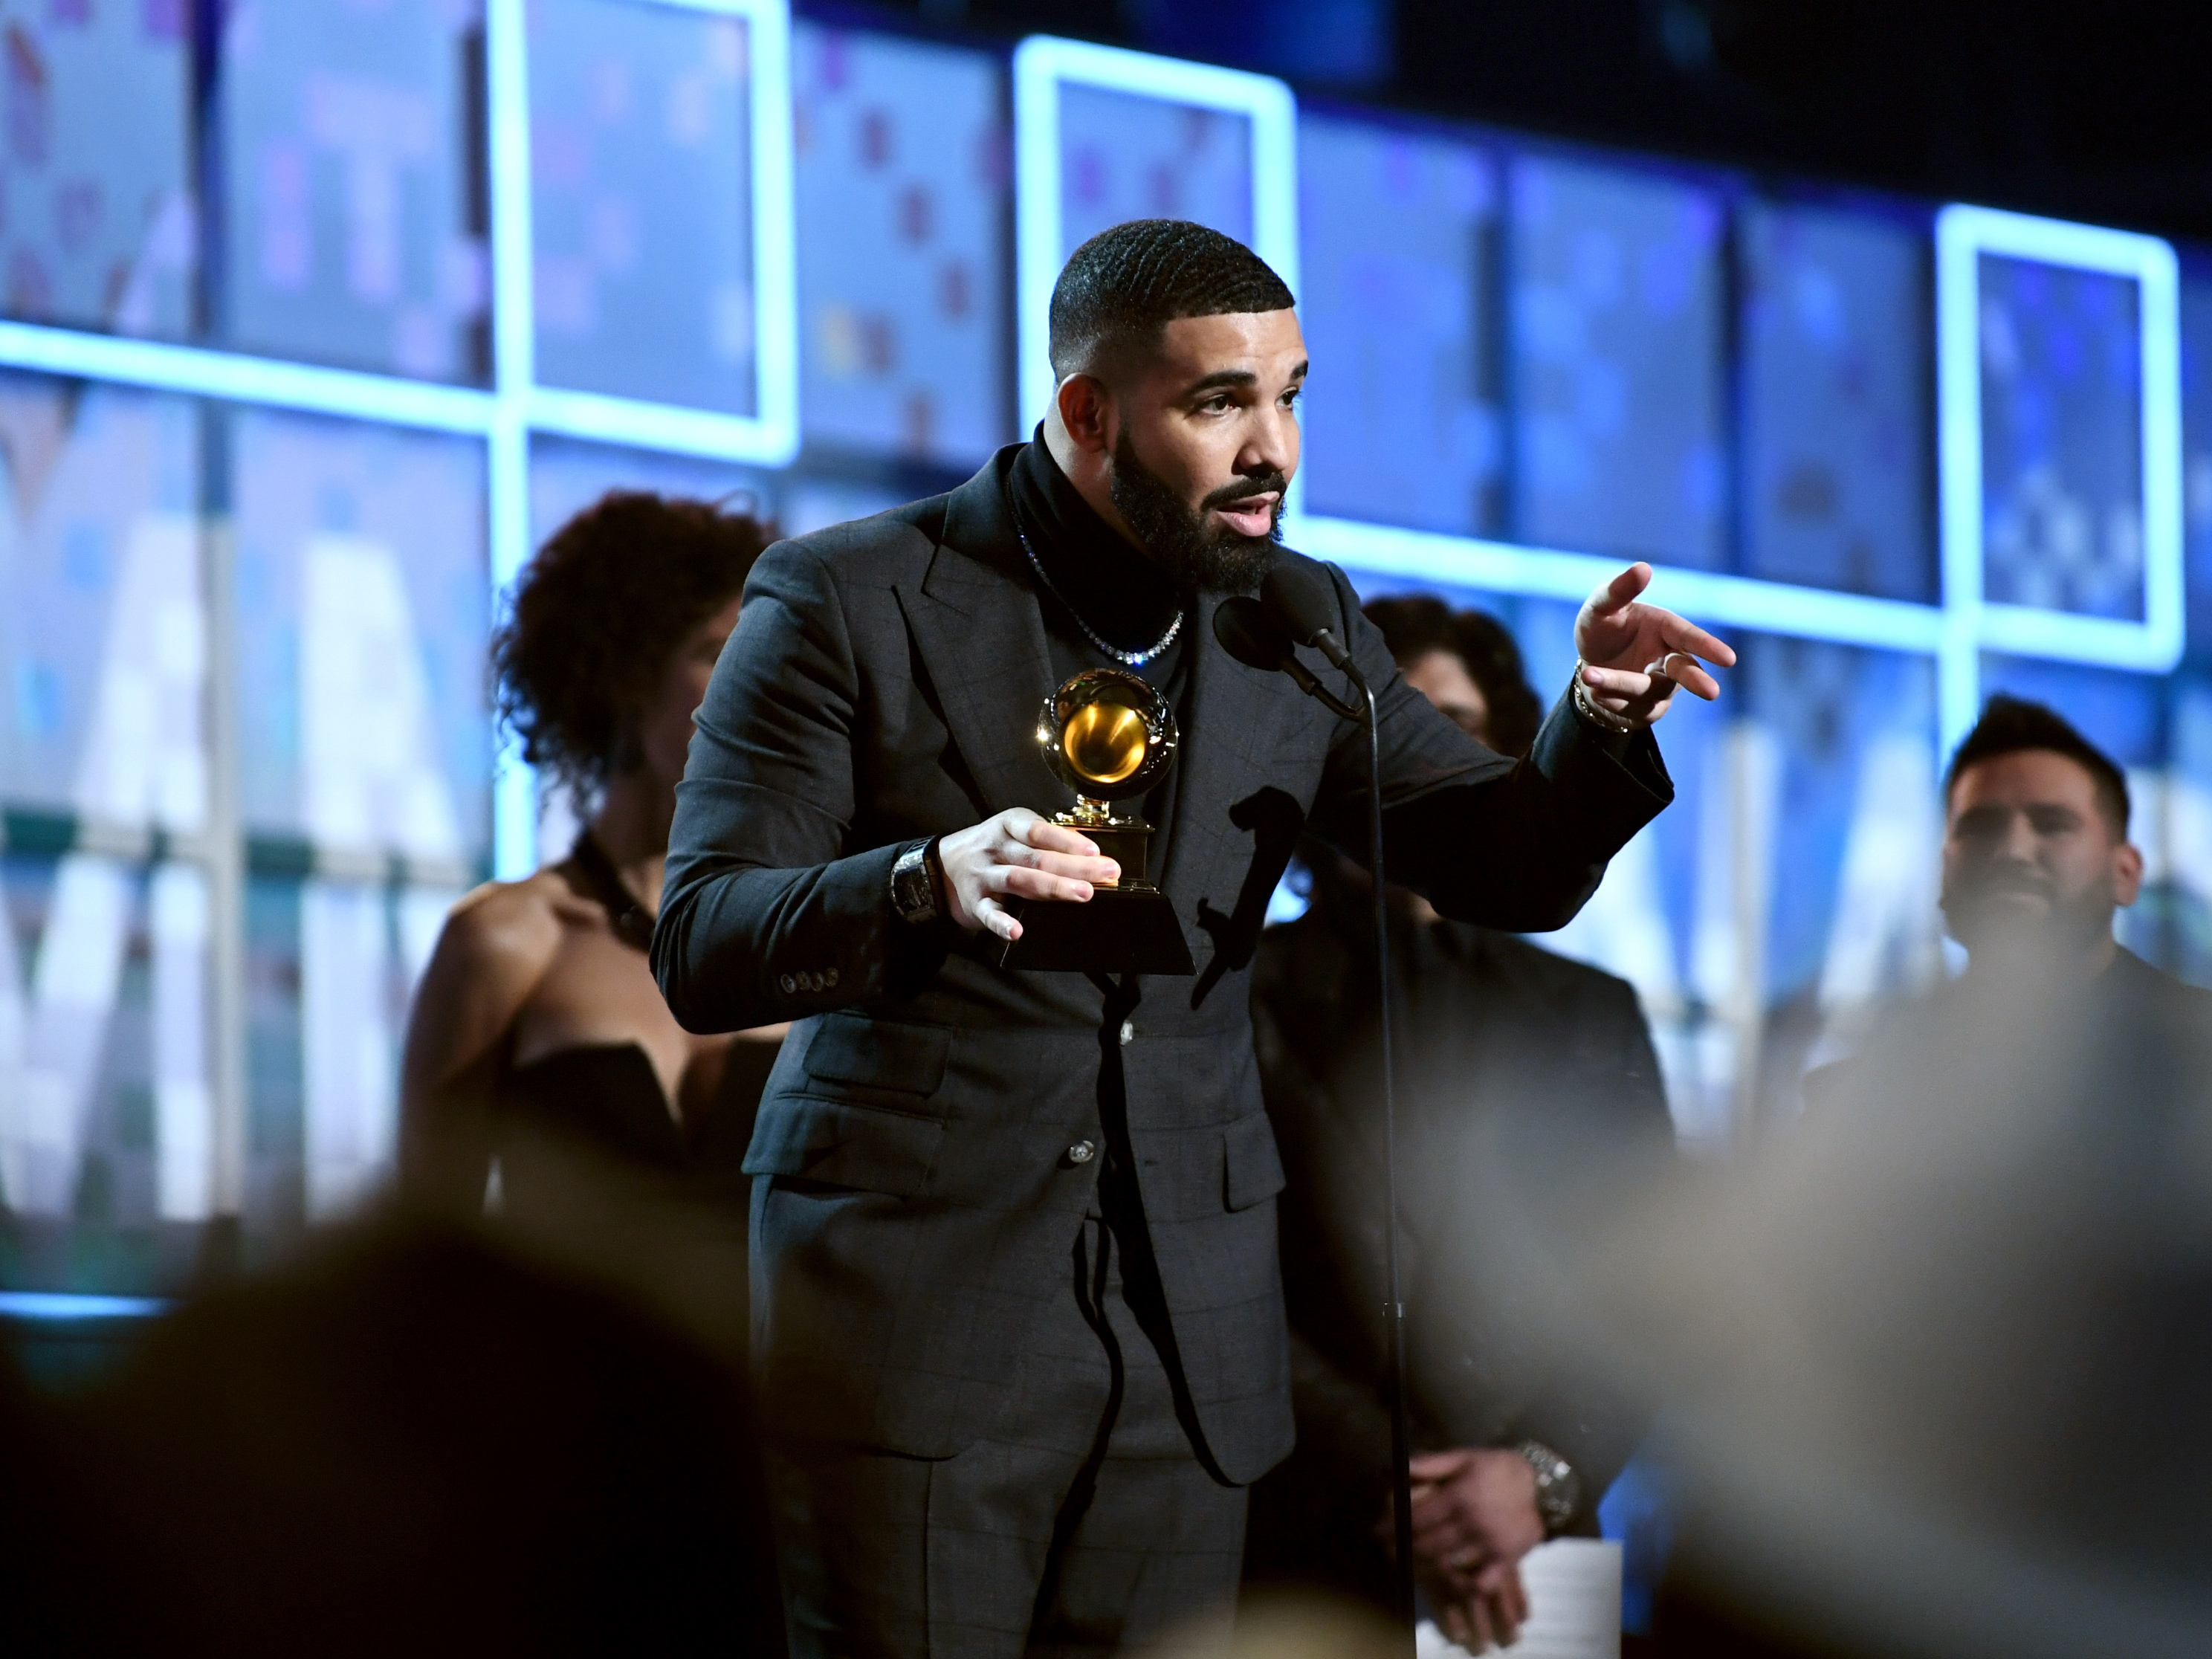 The Grammys Don't Have A Hip-Hop Problem. The Grammys Have A Grammy Problem